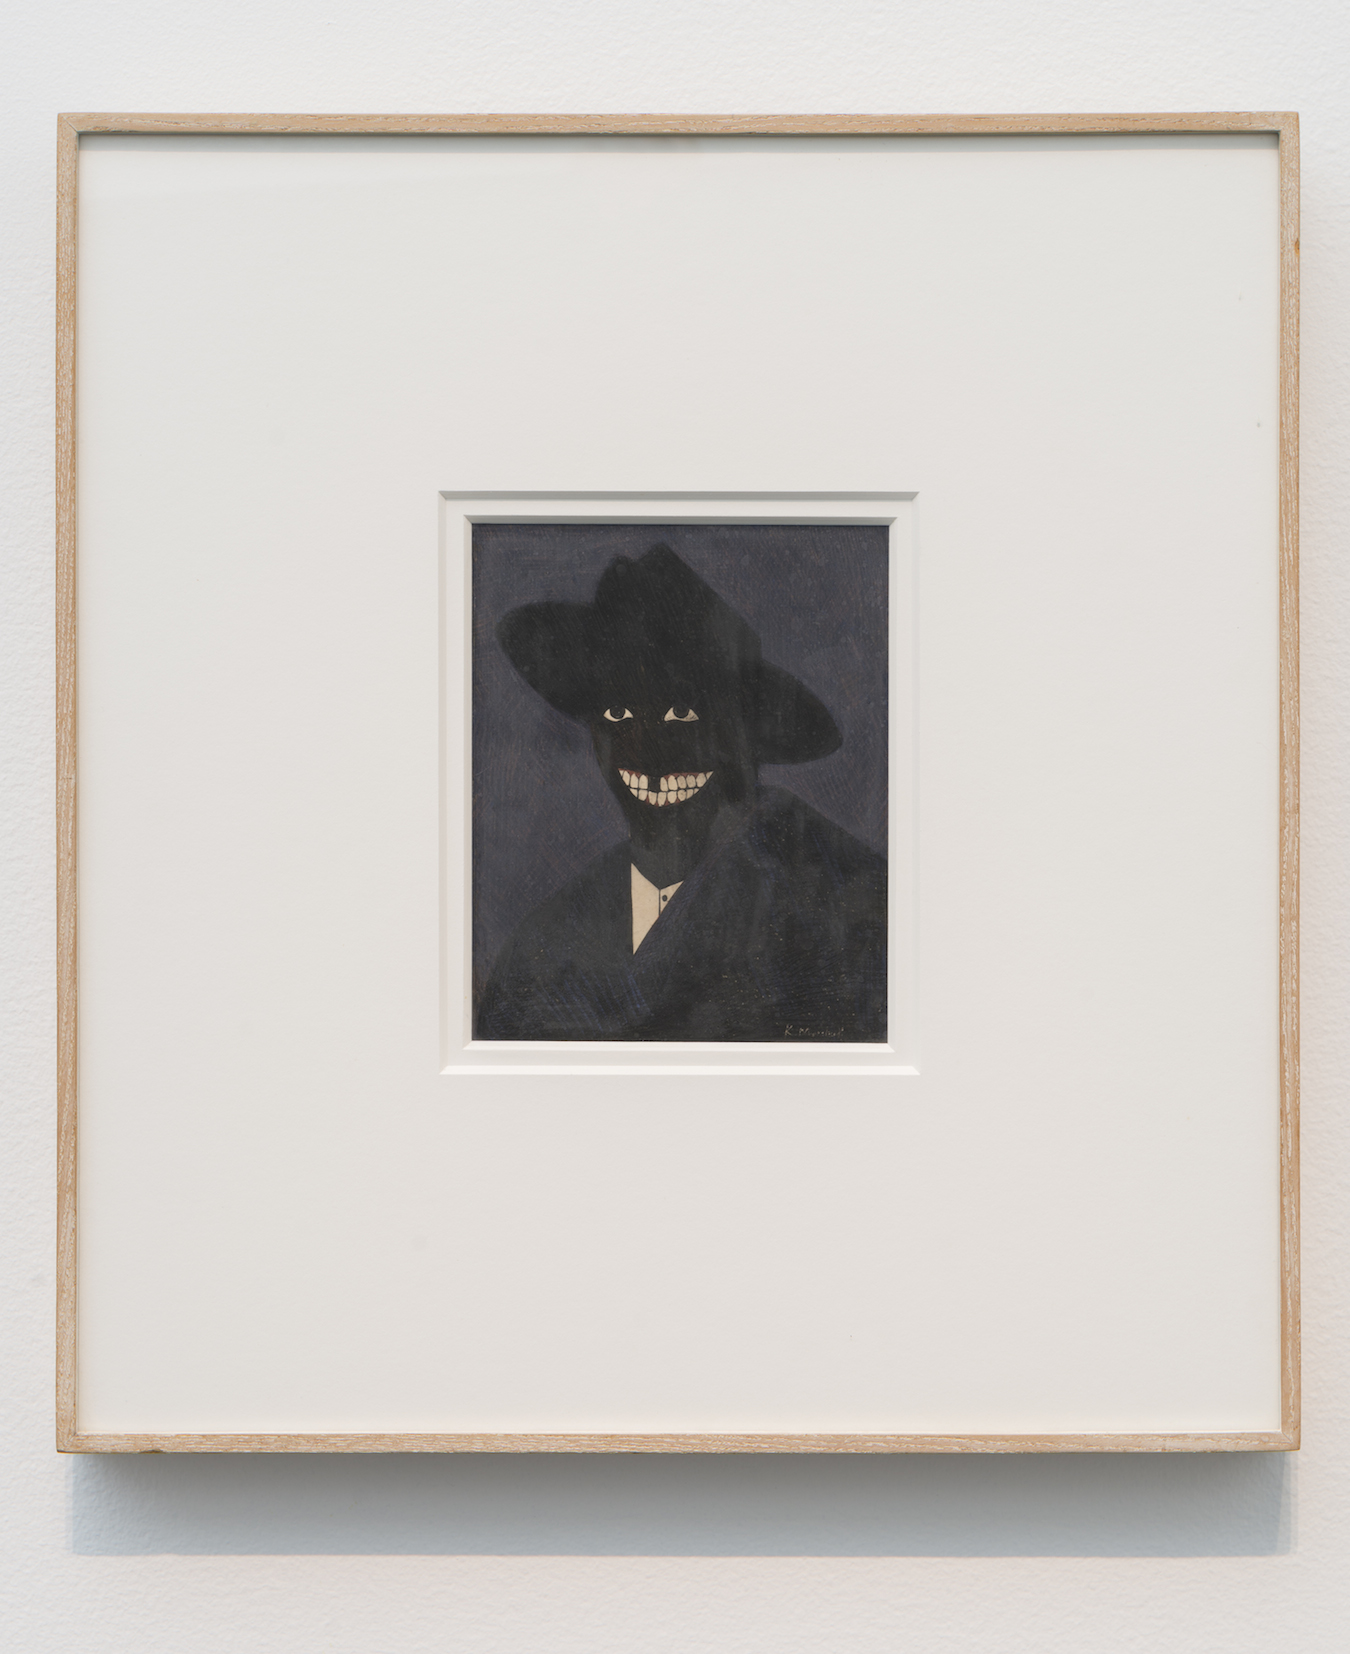 kerryjamesmarshall_artist-as-former-self